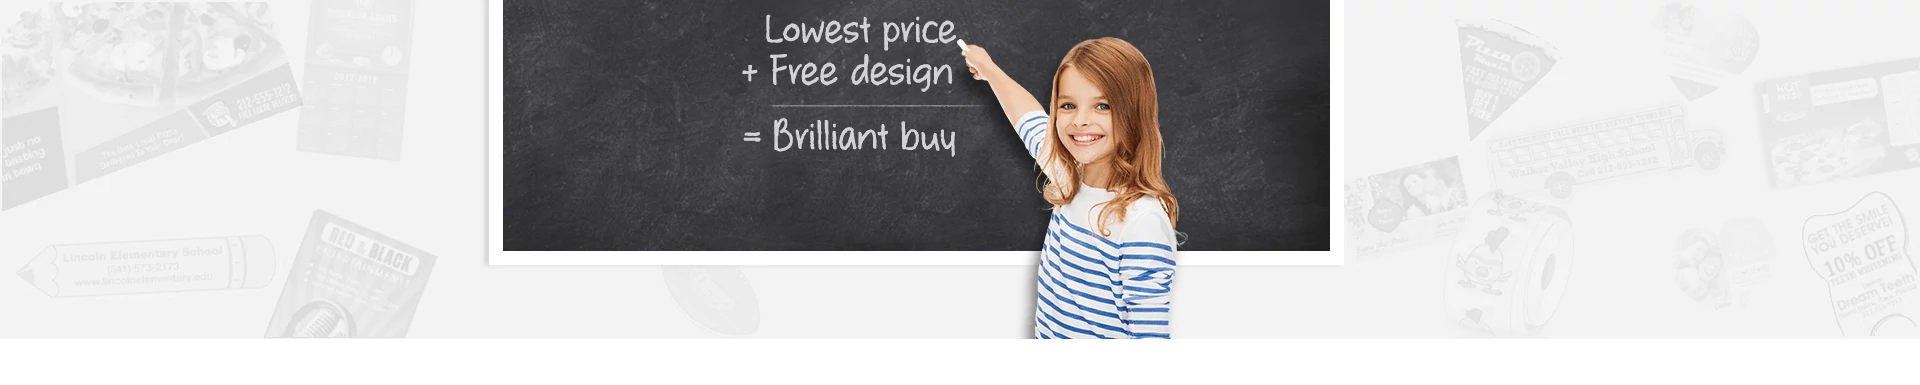 Lowest Price | Free Design | Free Shipping